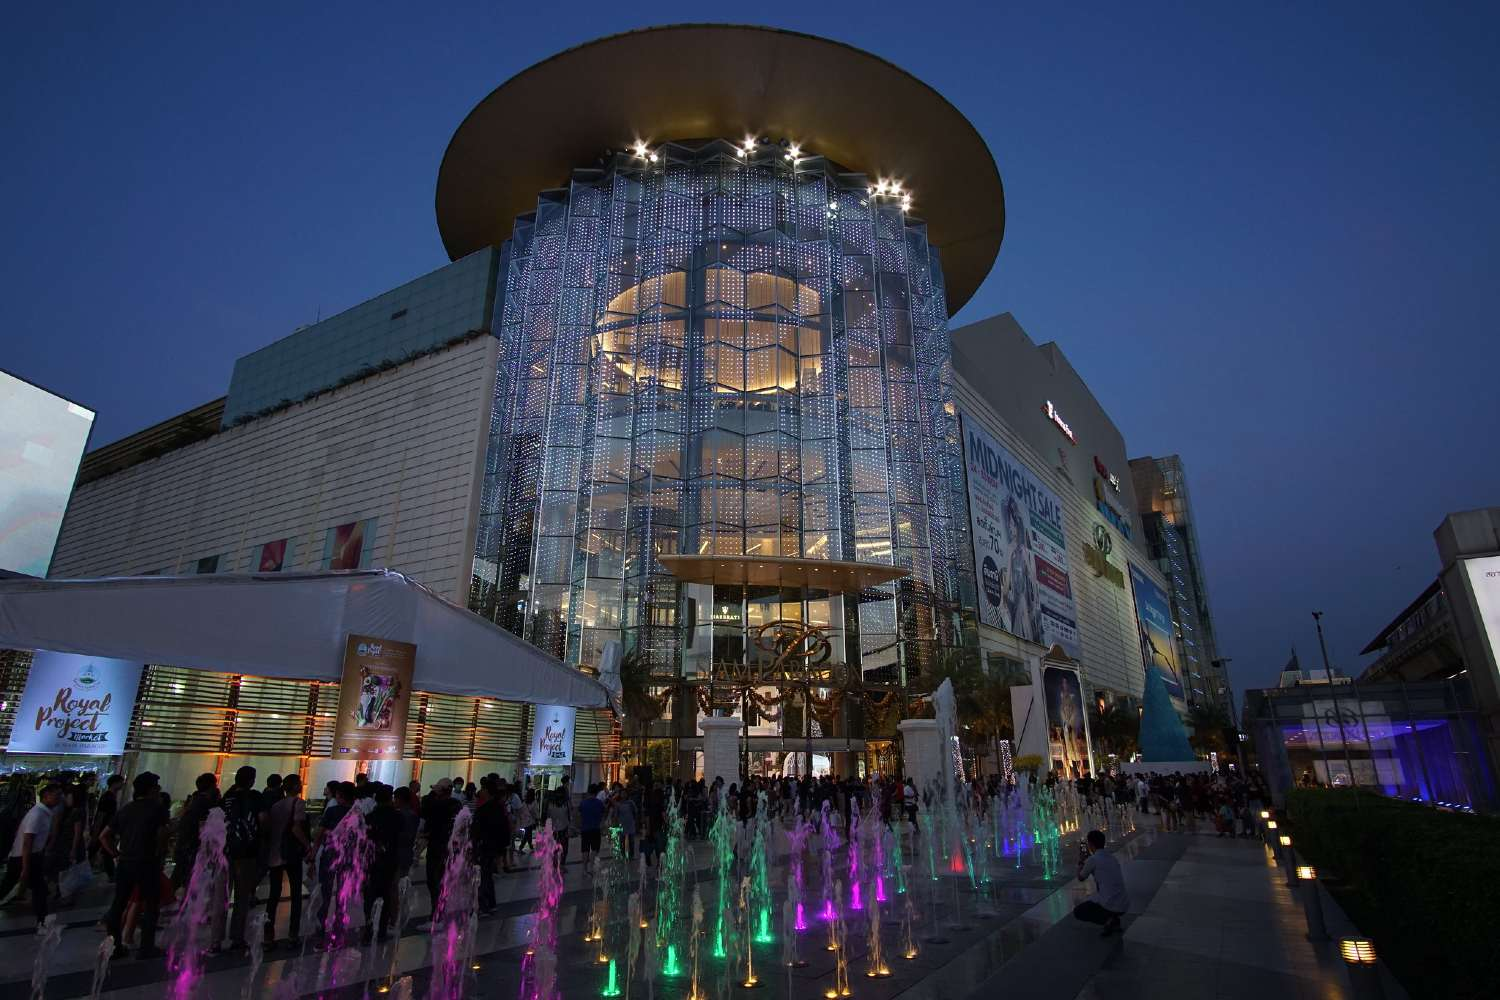 The main entrance of Siam Paragon during the evening